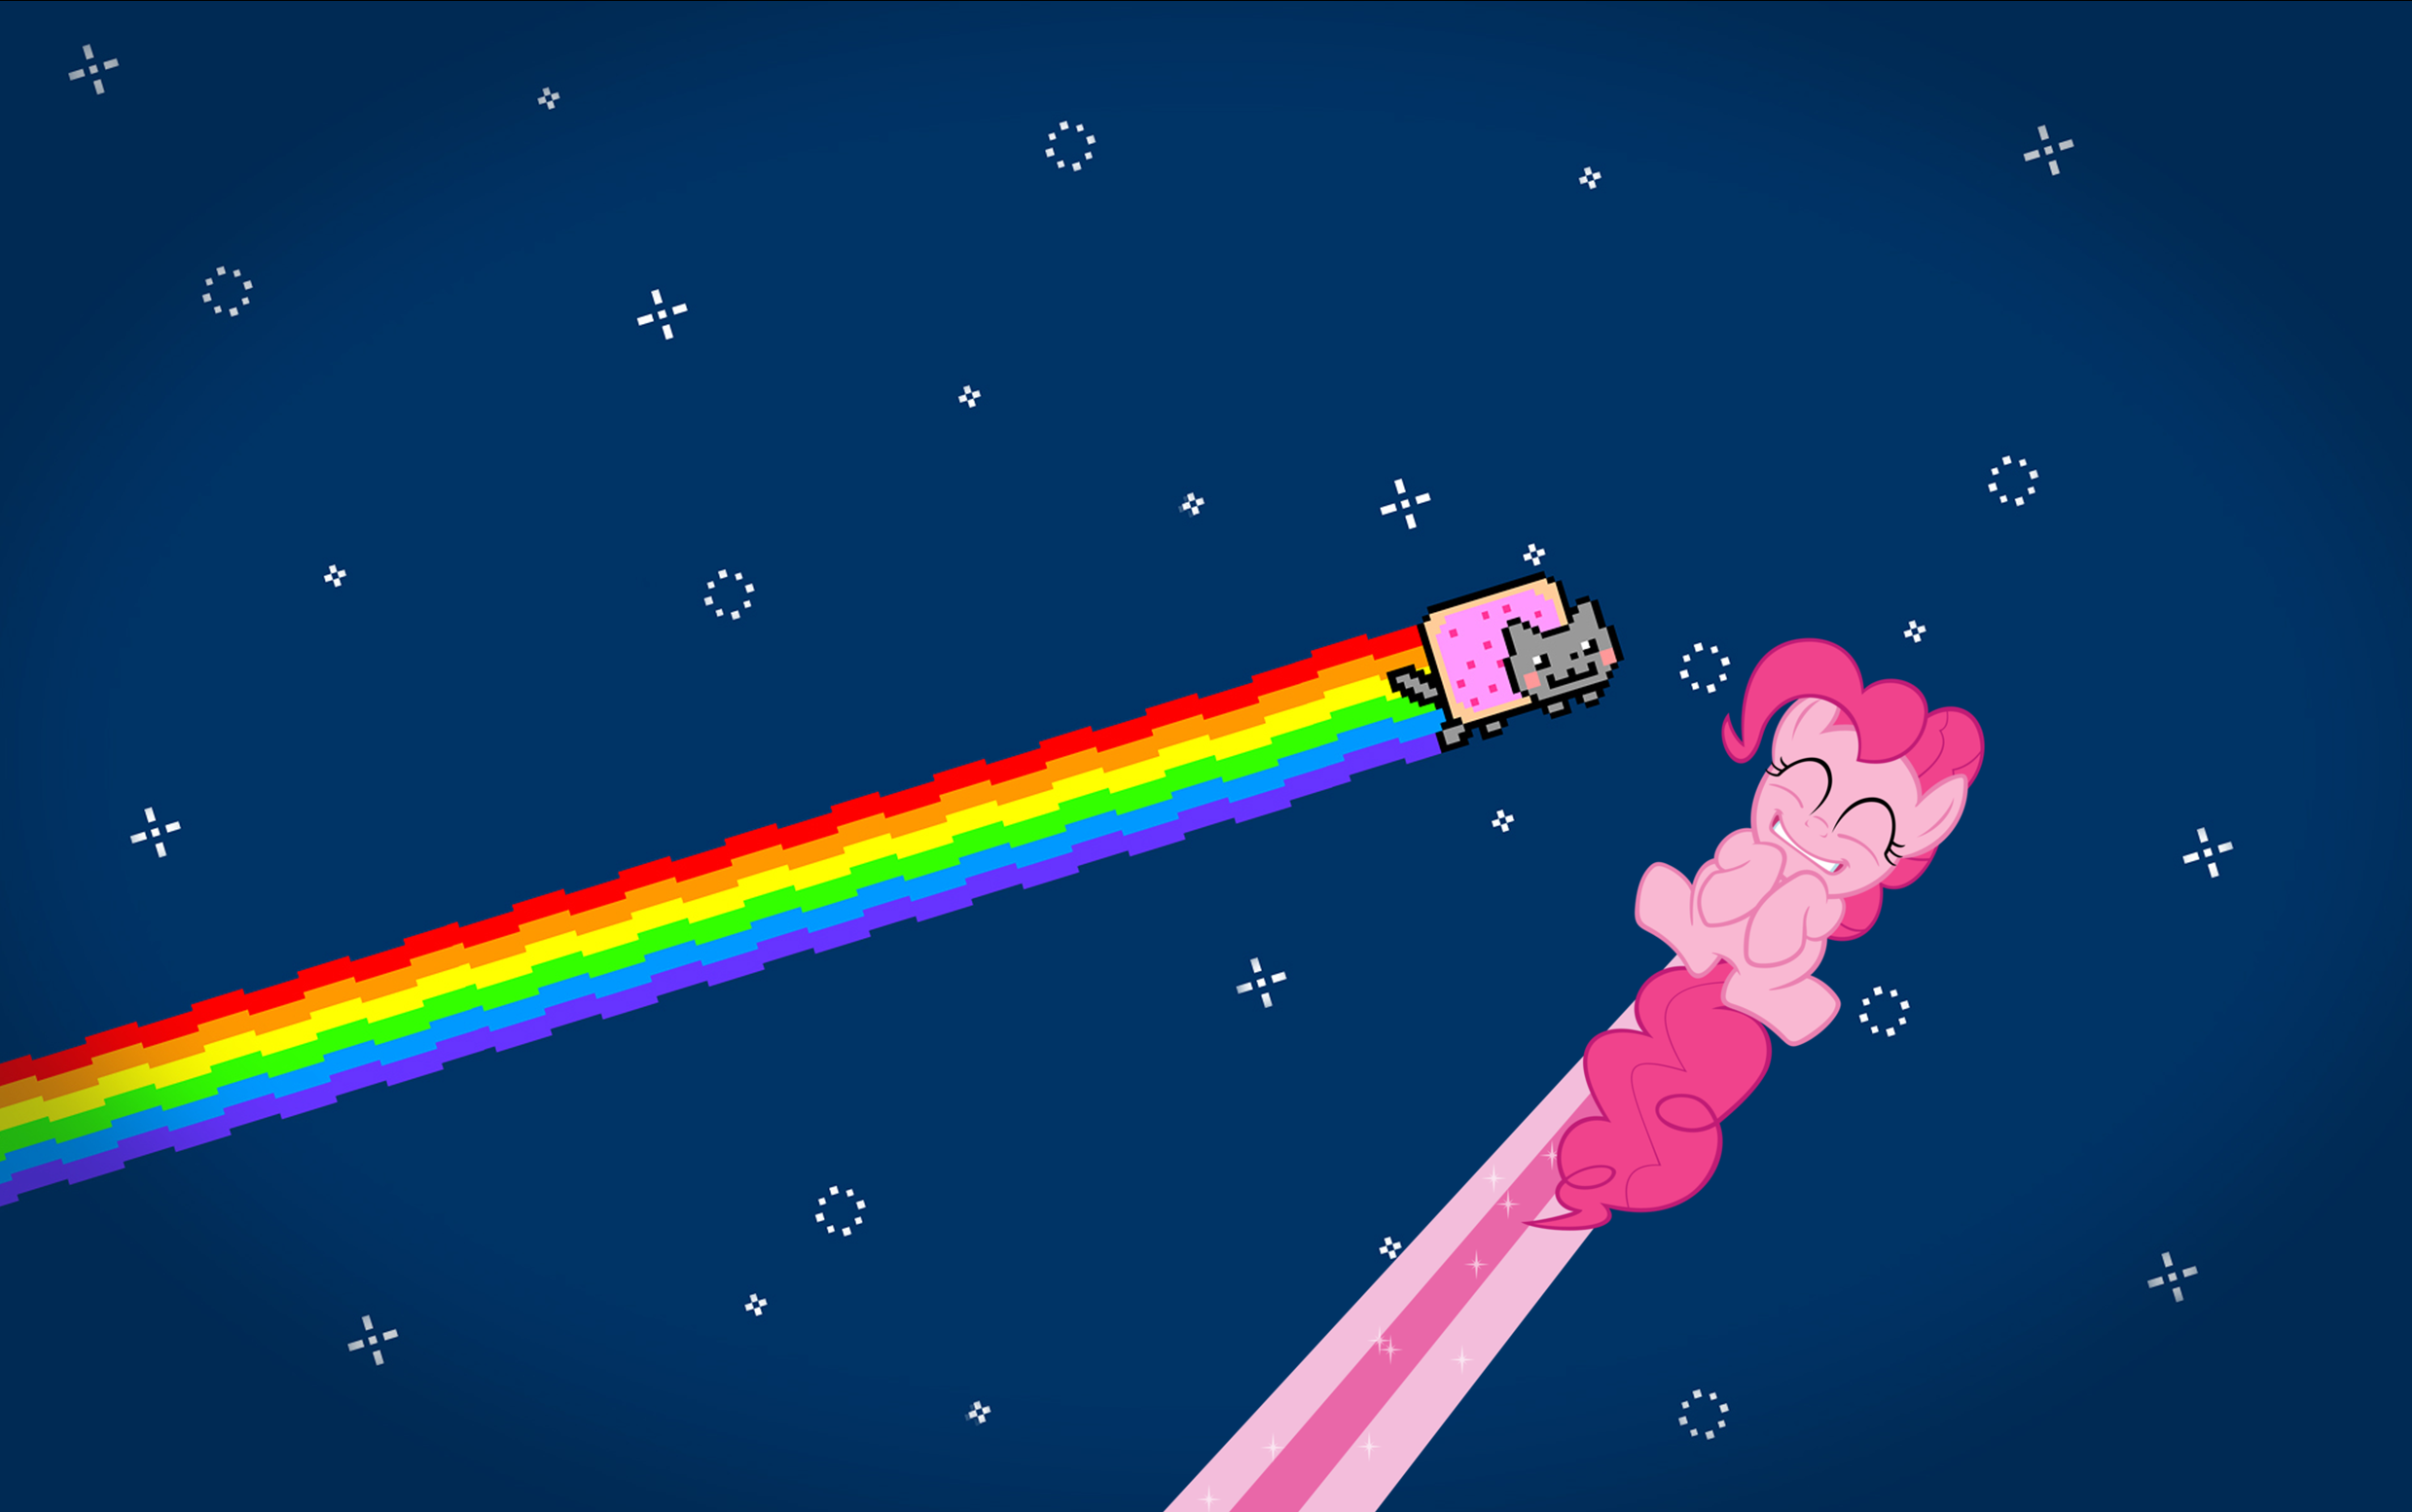 Nestordc 21 4 Nyan Cat And Pinkie Pie Wallpaper By